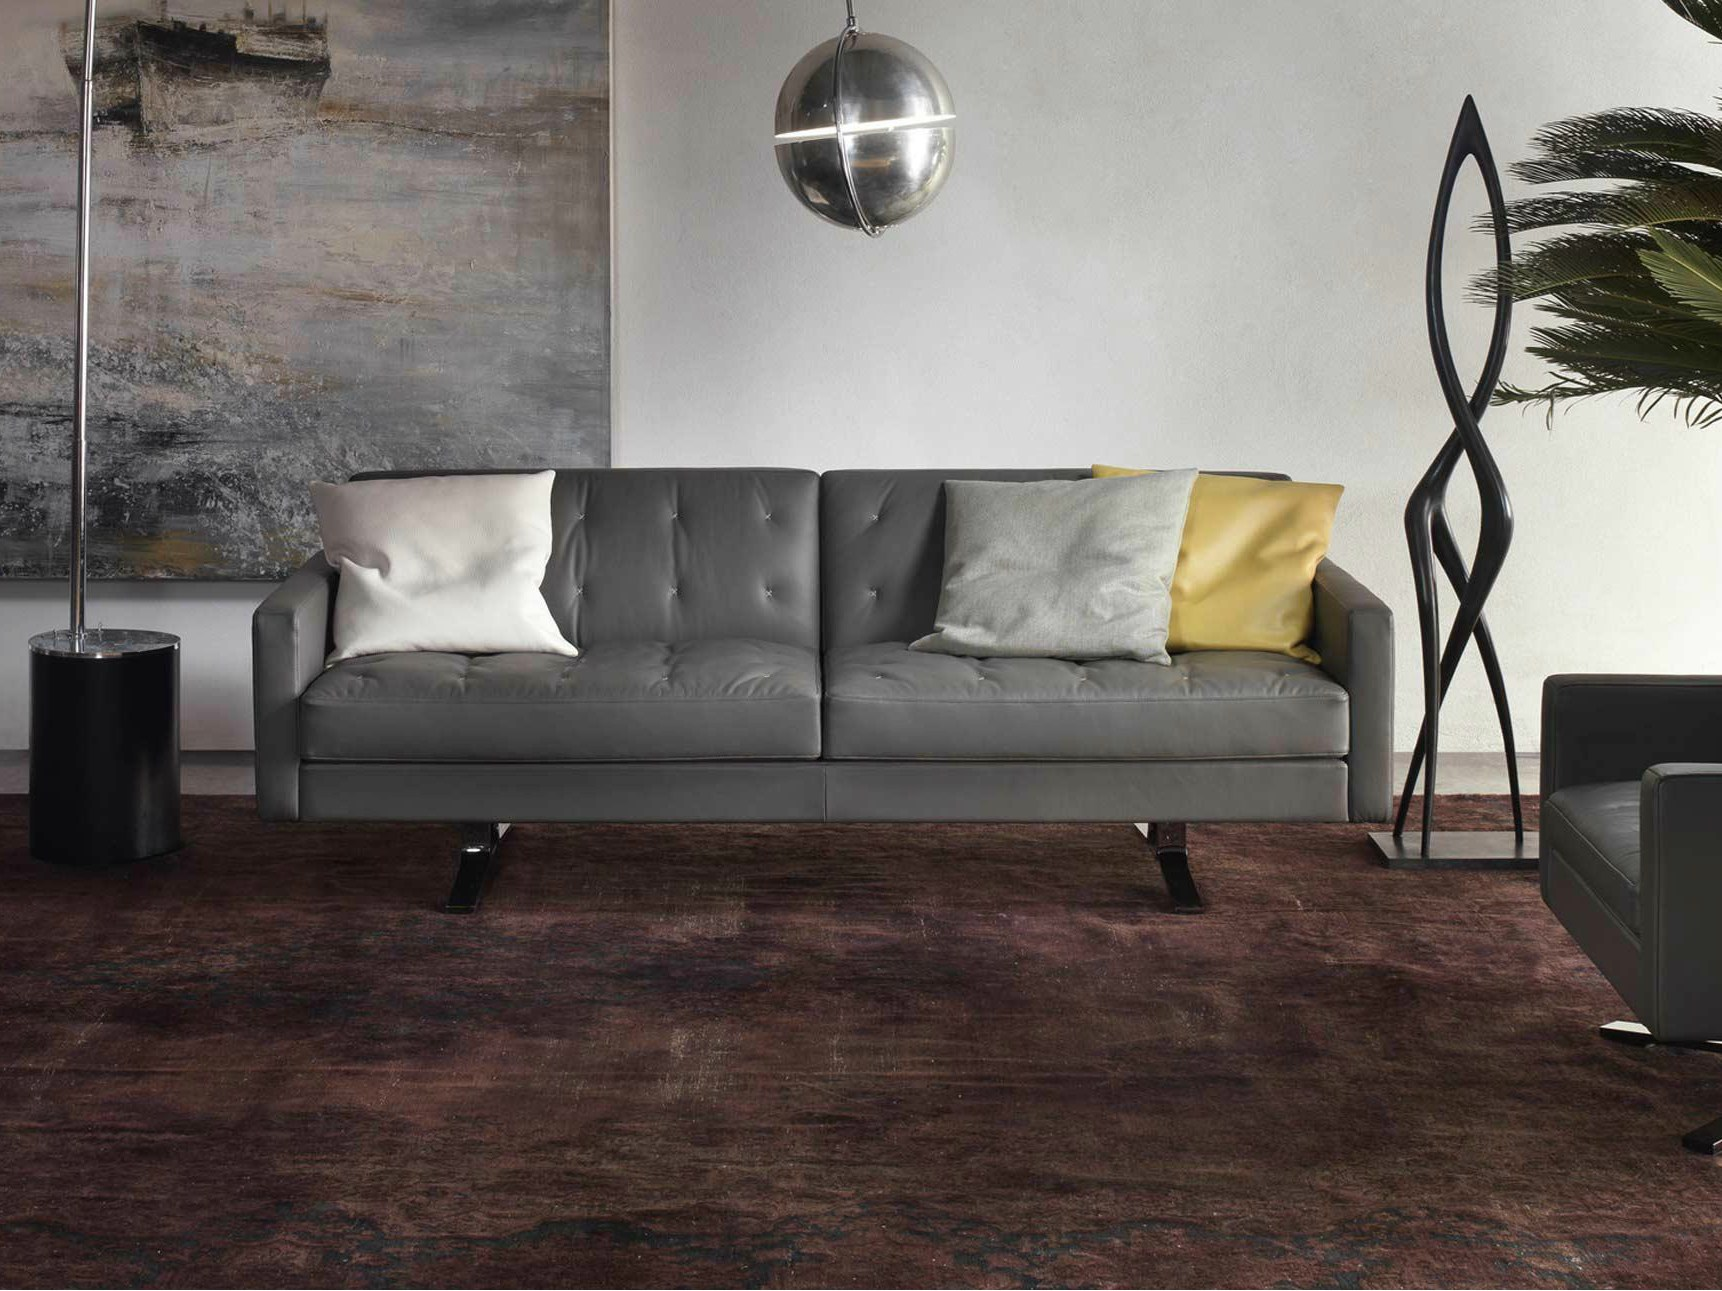 poltrona frau sofa kennedee most expensive brands tufted jr by design jean marie